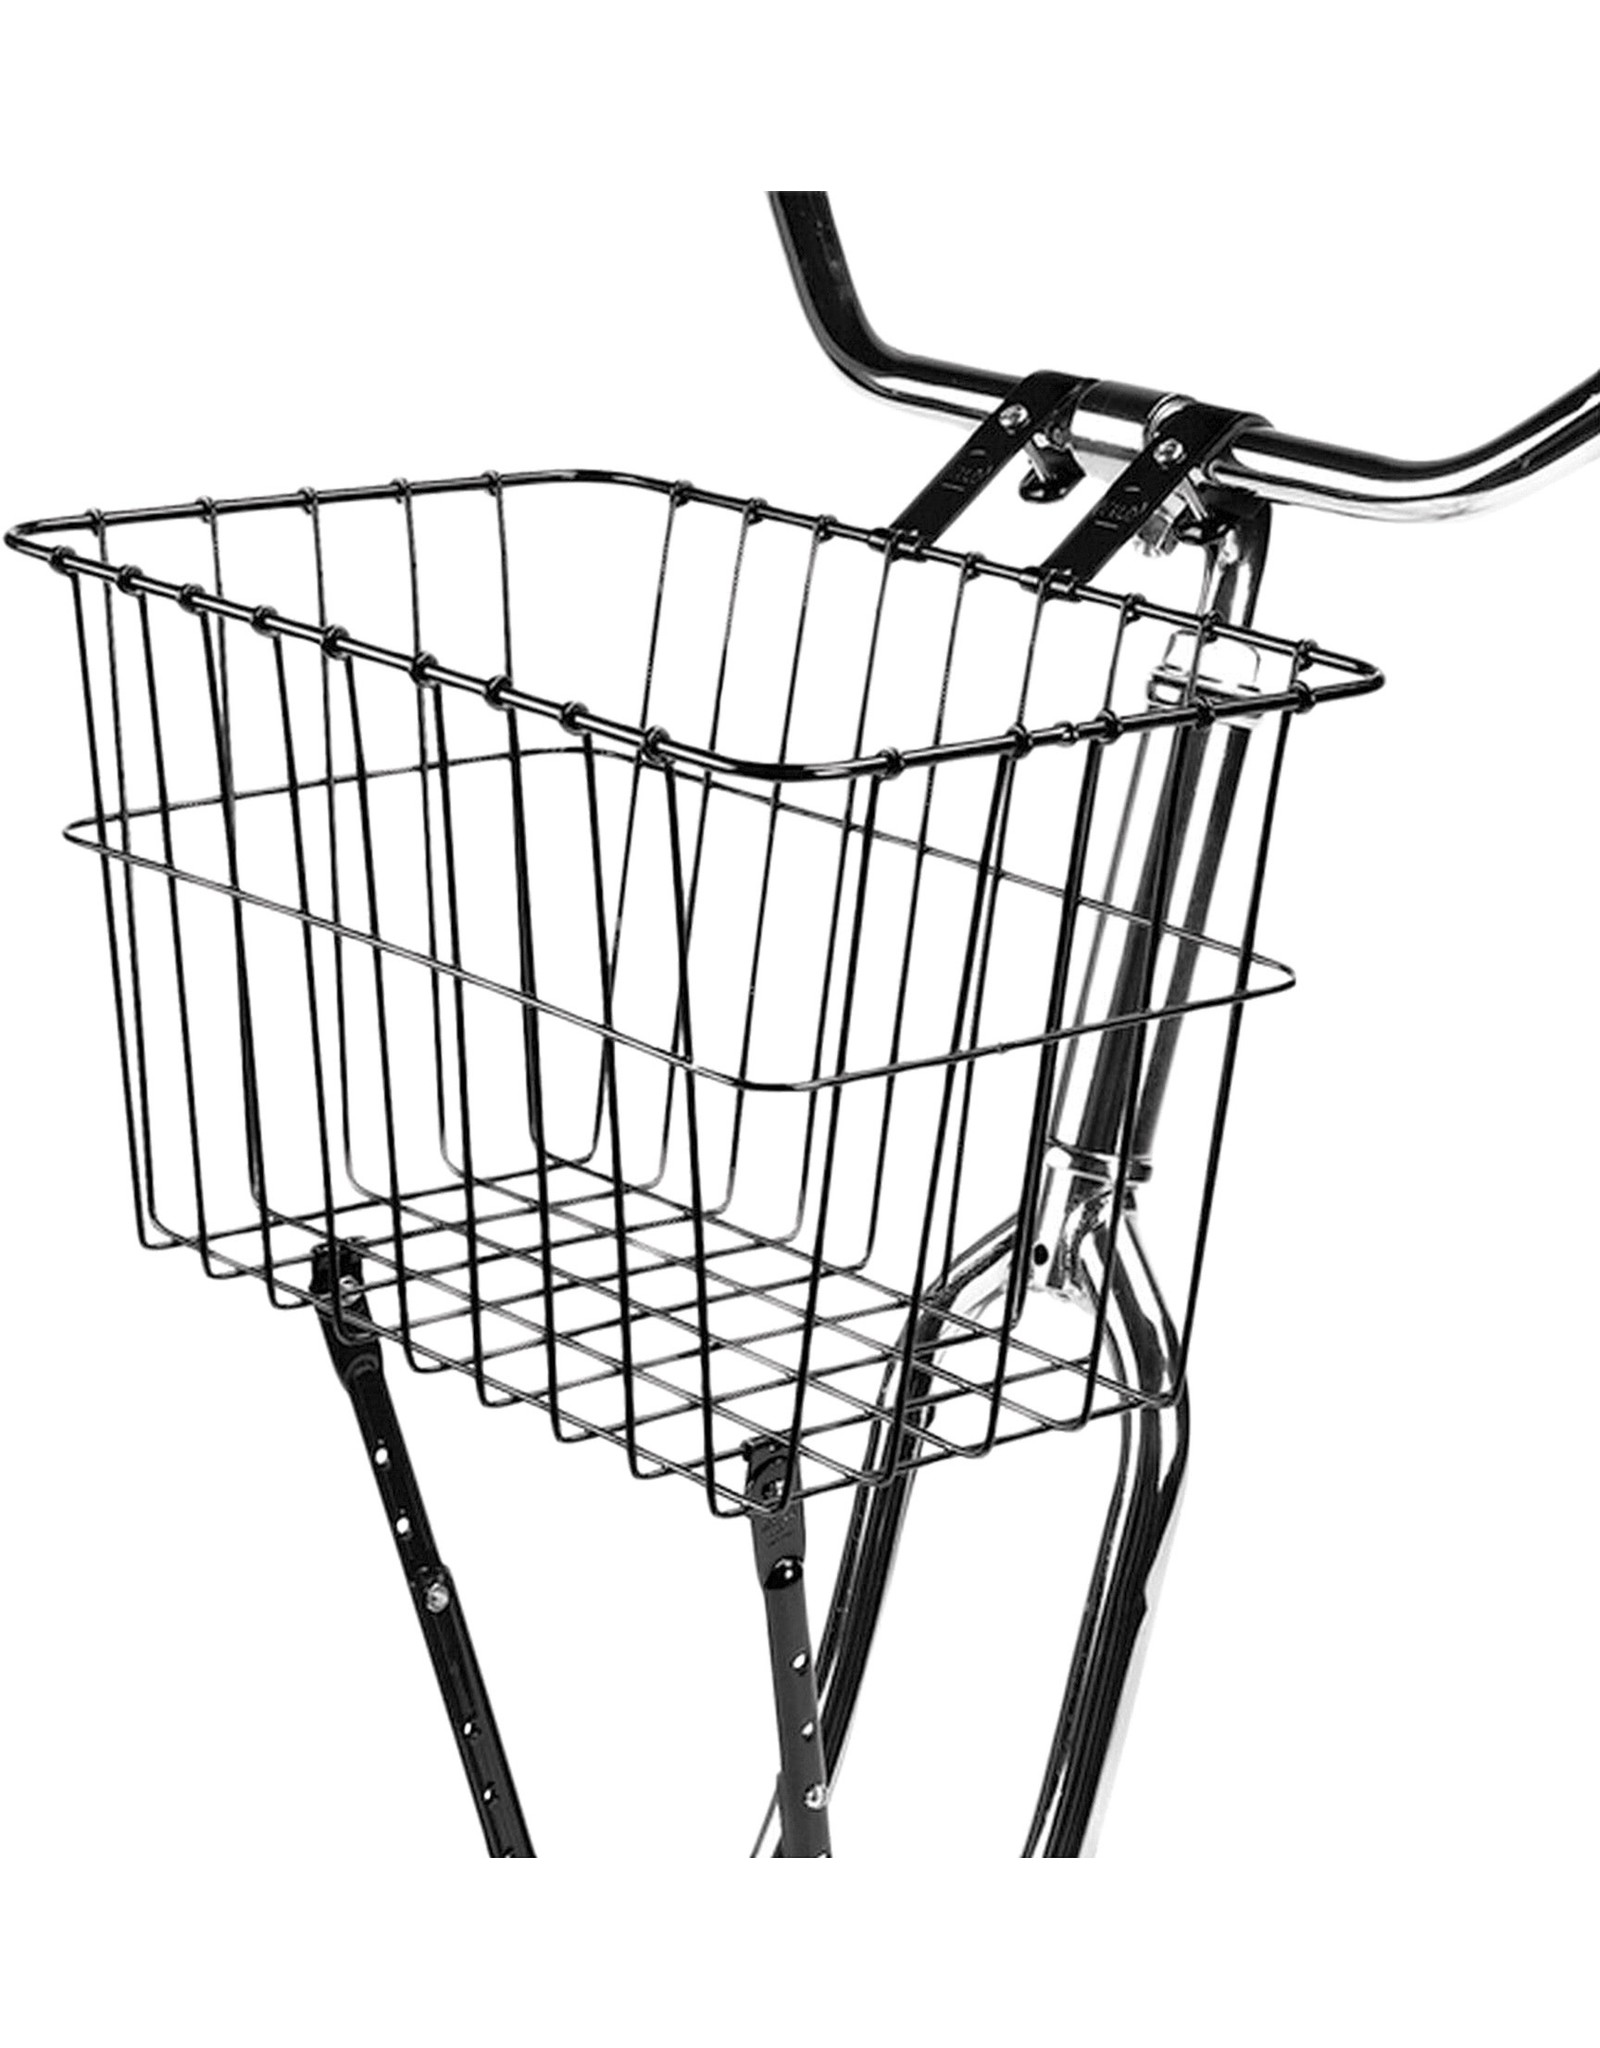 WALD WALD, 198 MULTI-FIT BASKET, Front, Grocery